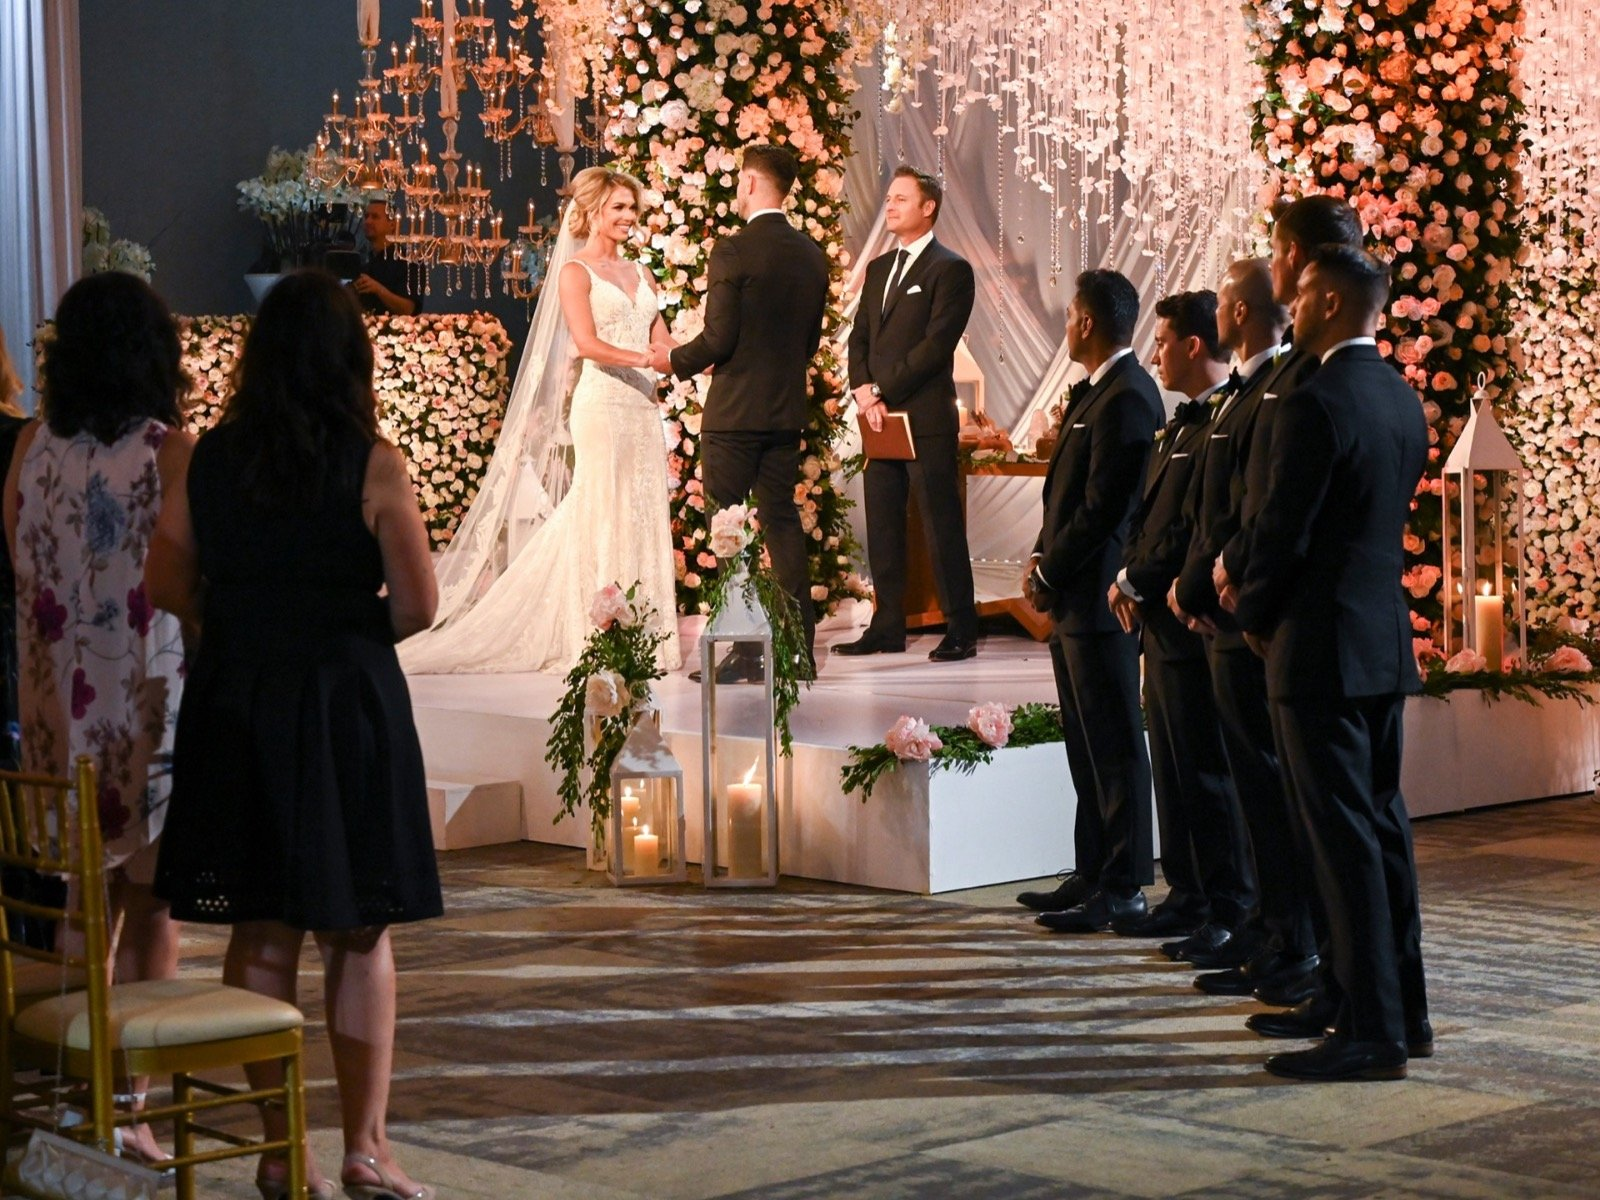 A Harvest Wedding Cast.Bachelor In Paradise Recap The Cast Turns Into Wedding Crashers